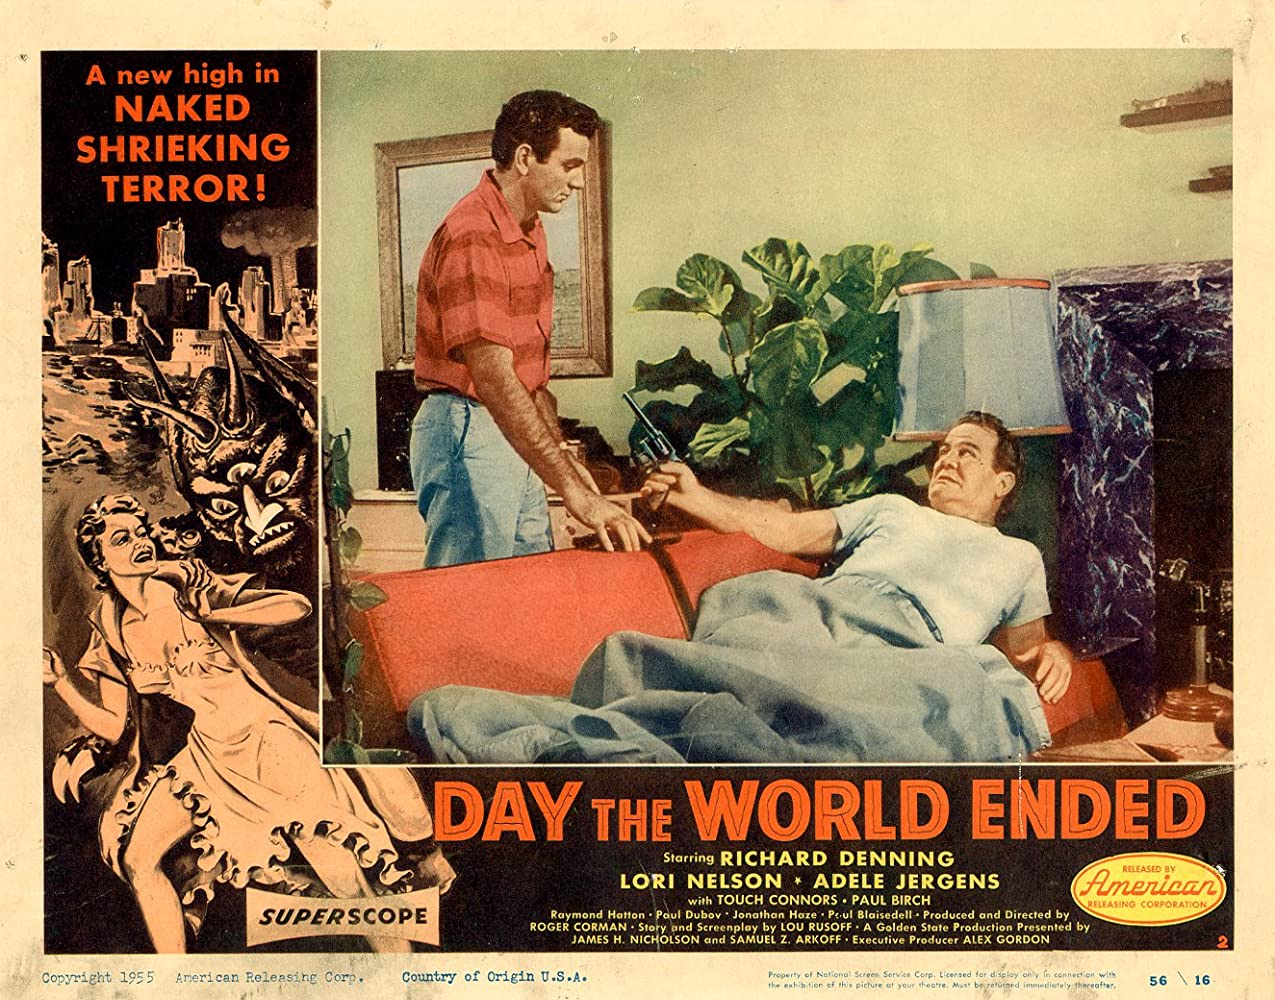 Paul Birch and Mike Connors in Day the World Ended (1955)